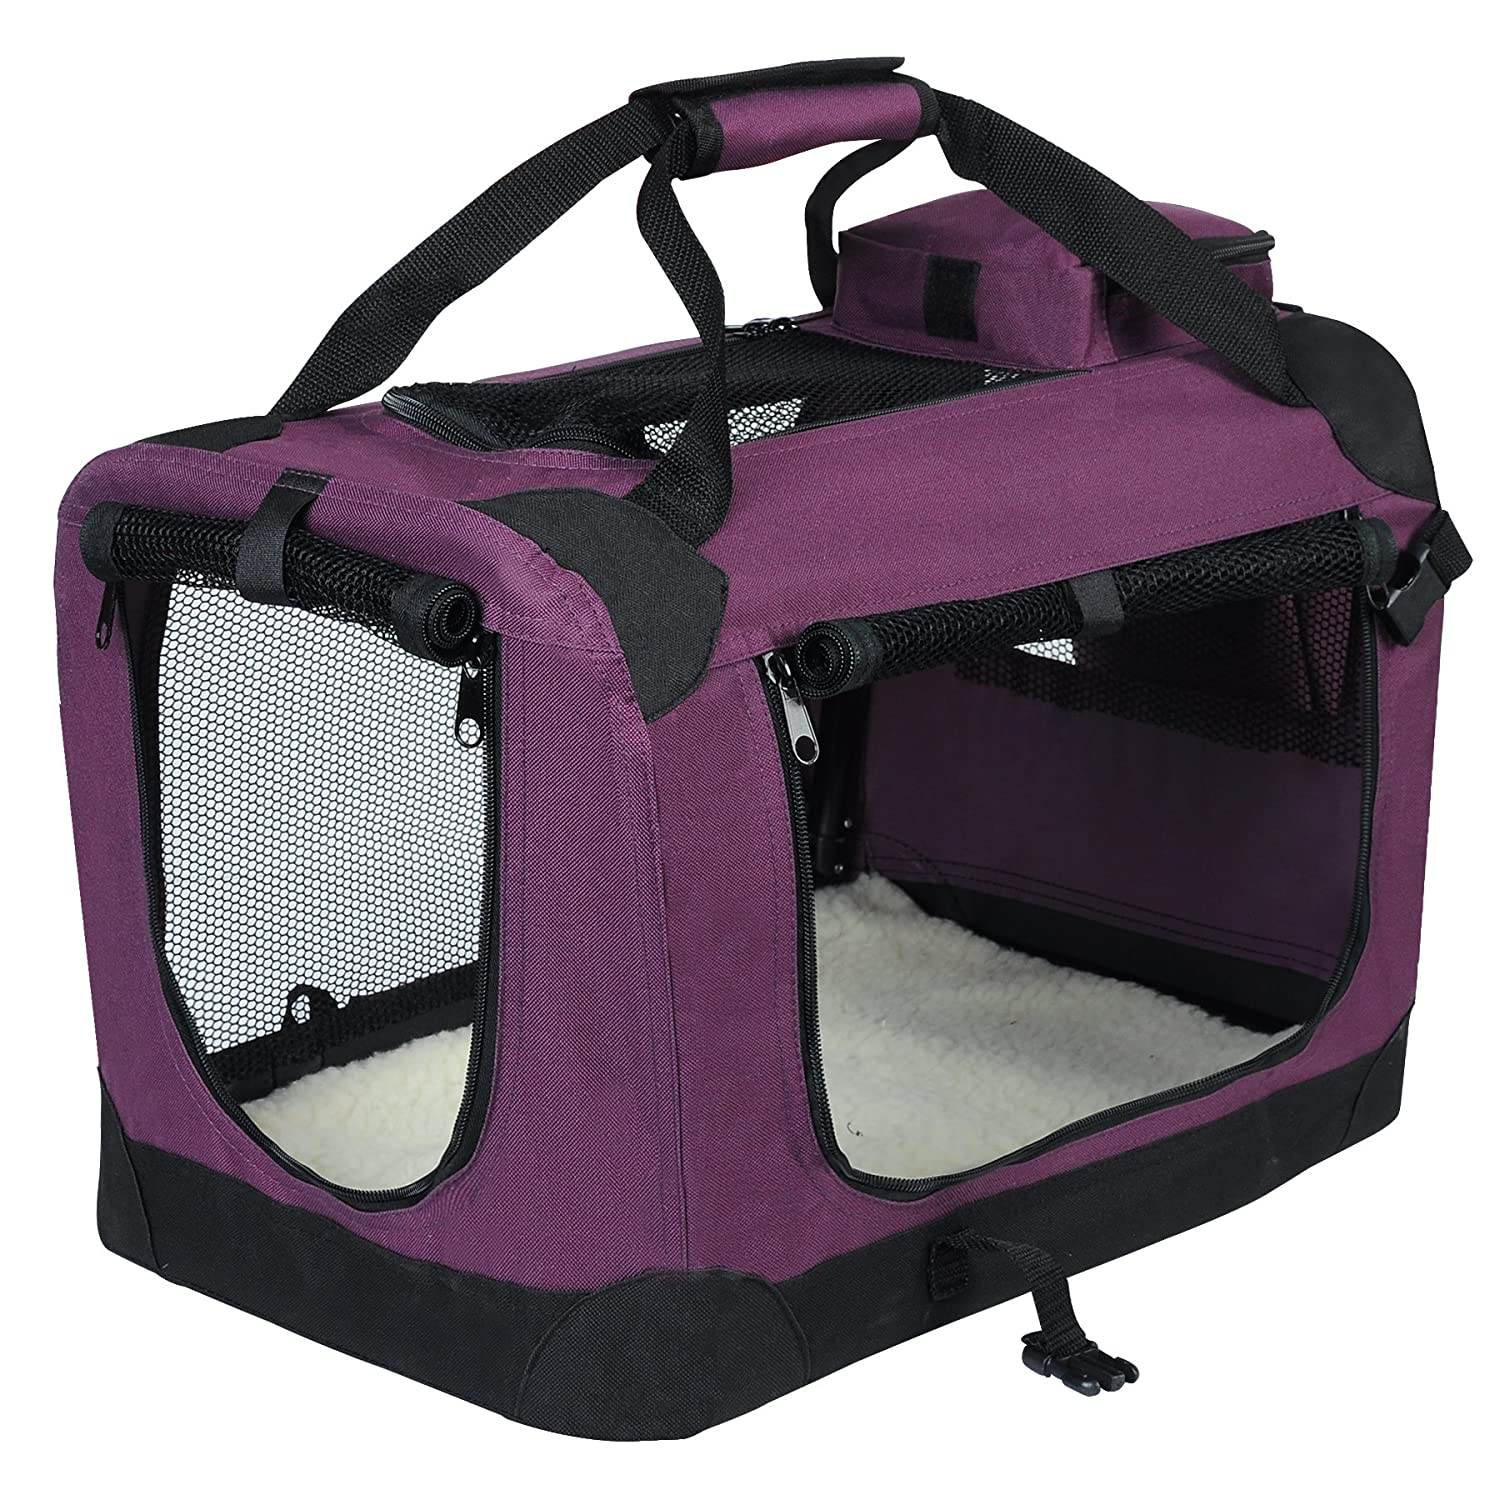 Purple XXXL 102X69X69cmEUGAD Pet Carrier Lightweight Dog Cage Portable Travel Luxury Dog Cat Puppy Bag